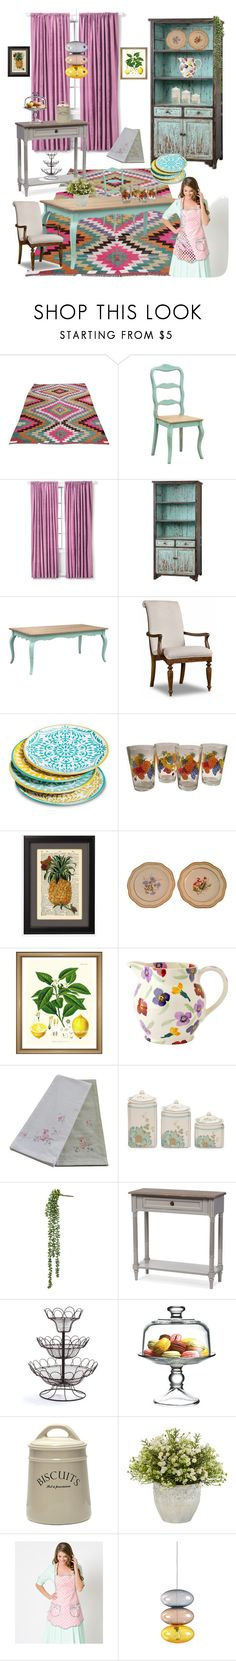 """""""THE KITCHEN IS OPEN!!!!"""" by kskafida ❤ liked on Polyvore featuring interior, interiors, interior design, home, home decor, interior decorating, Hooker Furniture, Mudhut, Shabby Chic and Baxton Studio"""